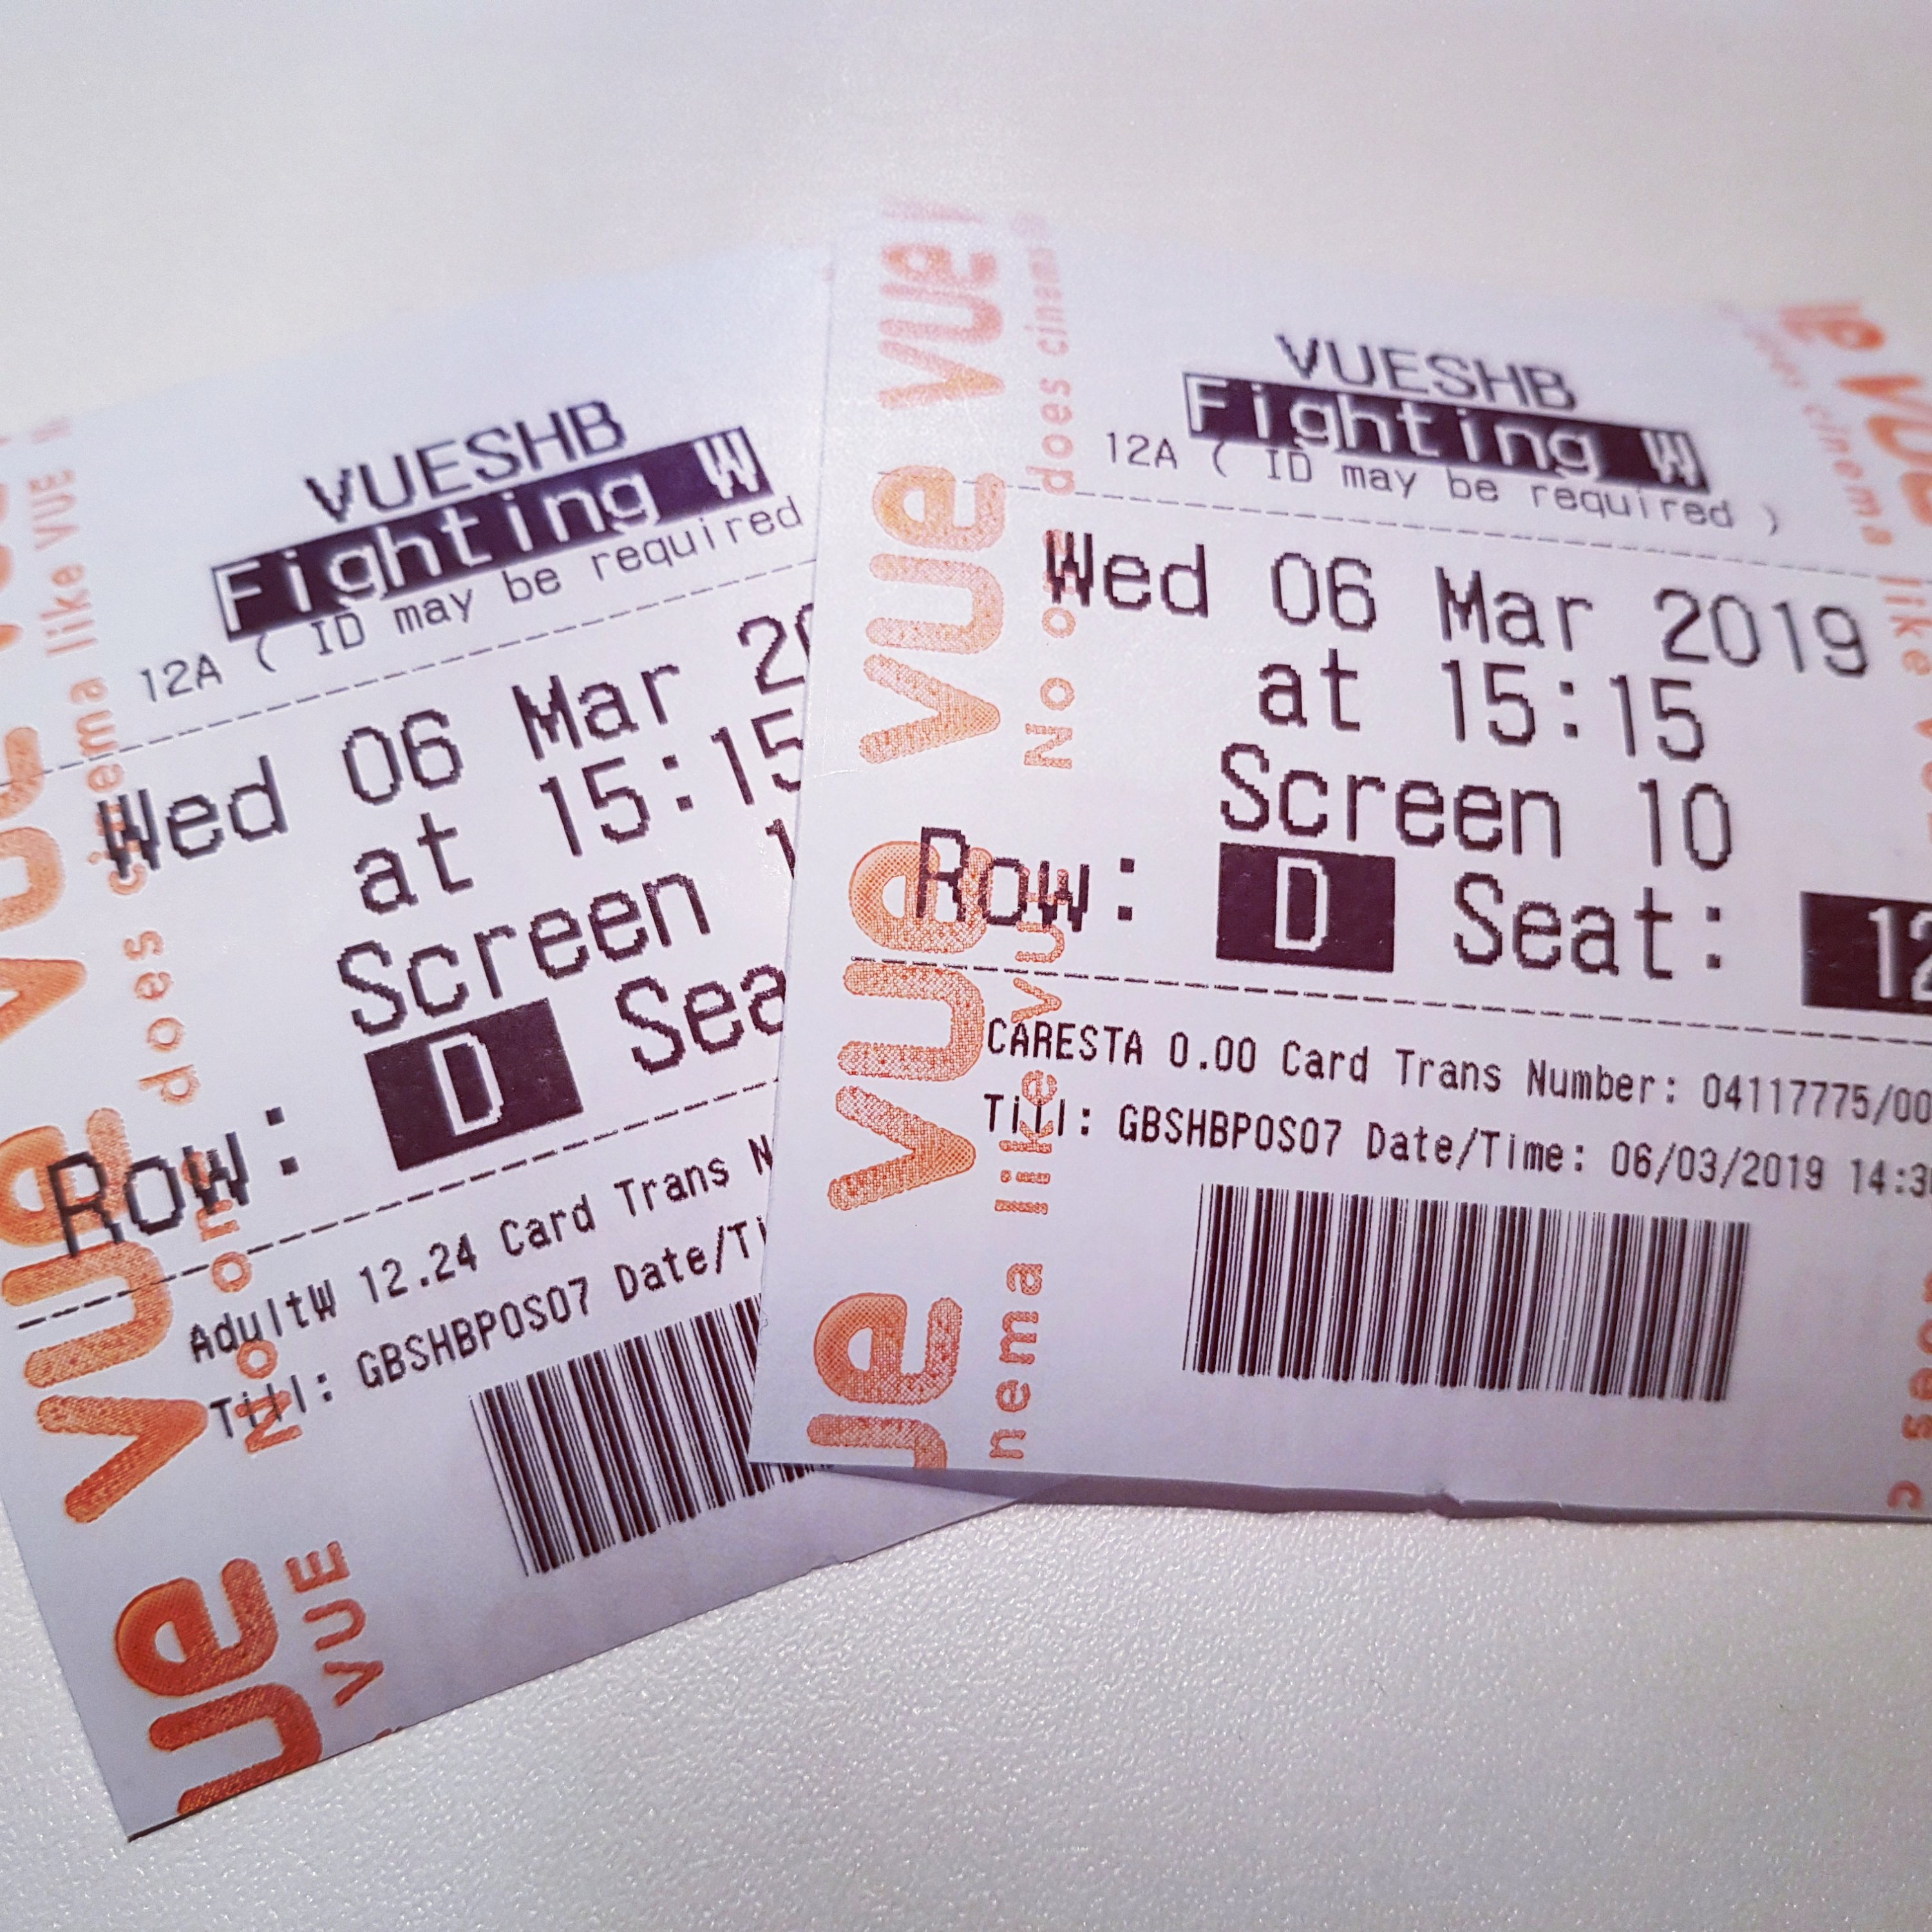 The cinema tickets for Fighting with my Family.